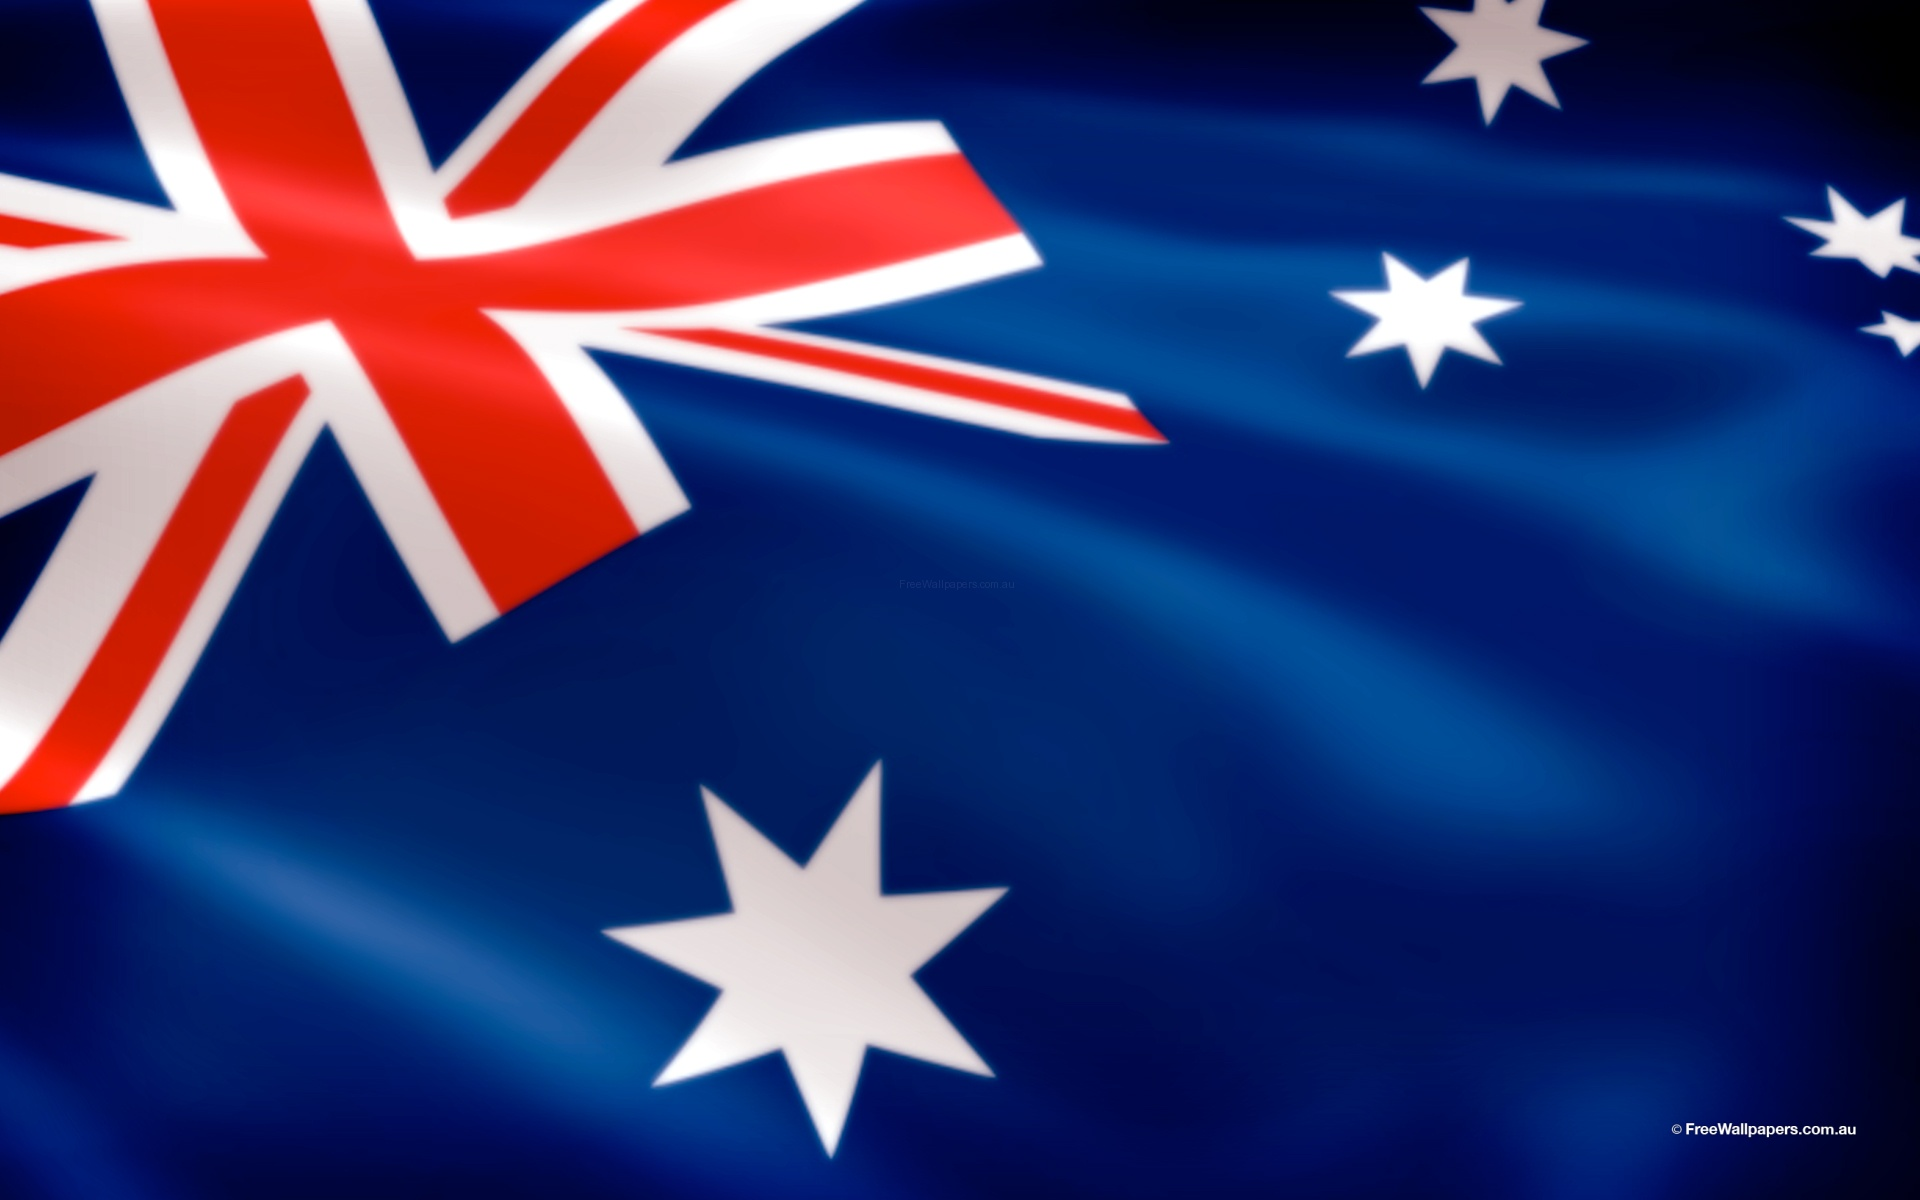 Download Australian Flag Desktop Wallpapers ImgHD Browse and 1920x1200